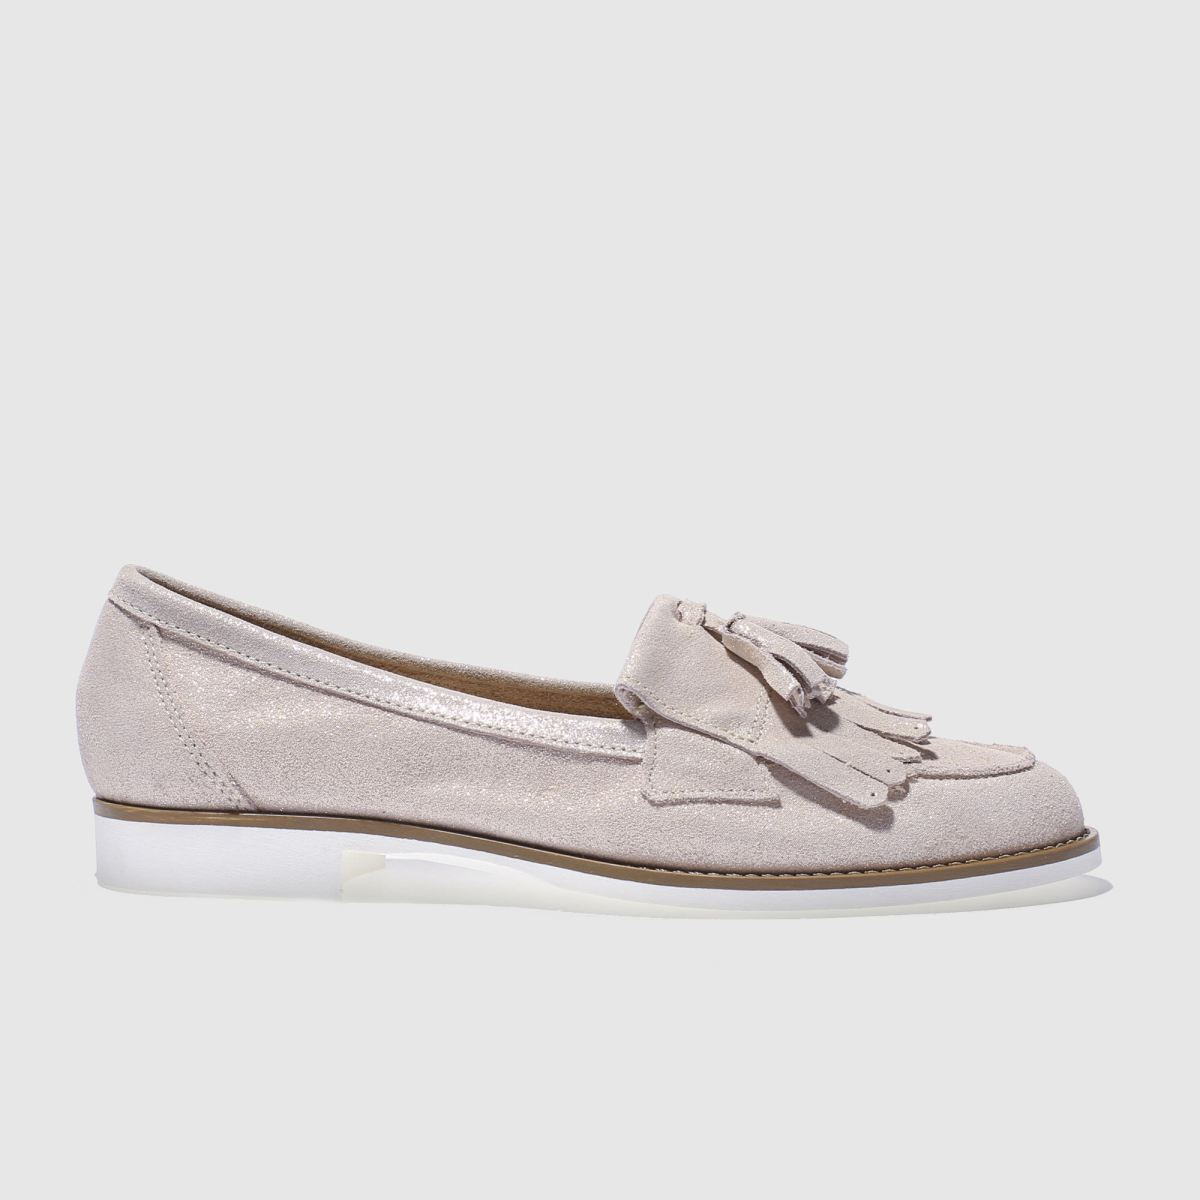 Schuh Pale Pink Compass Flat Shoes